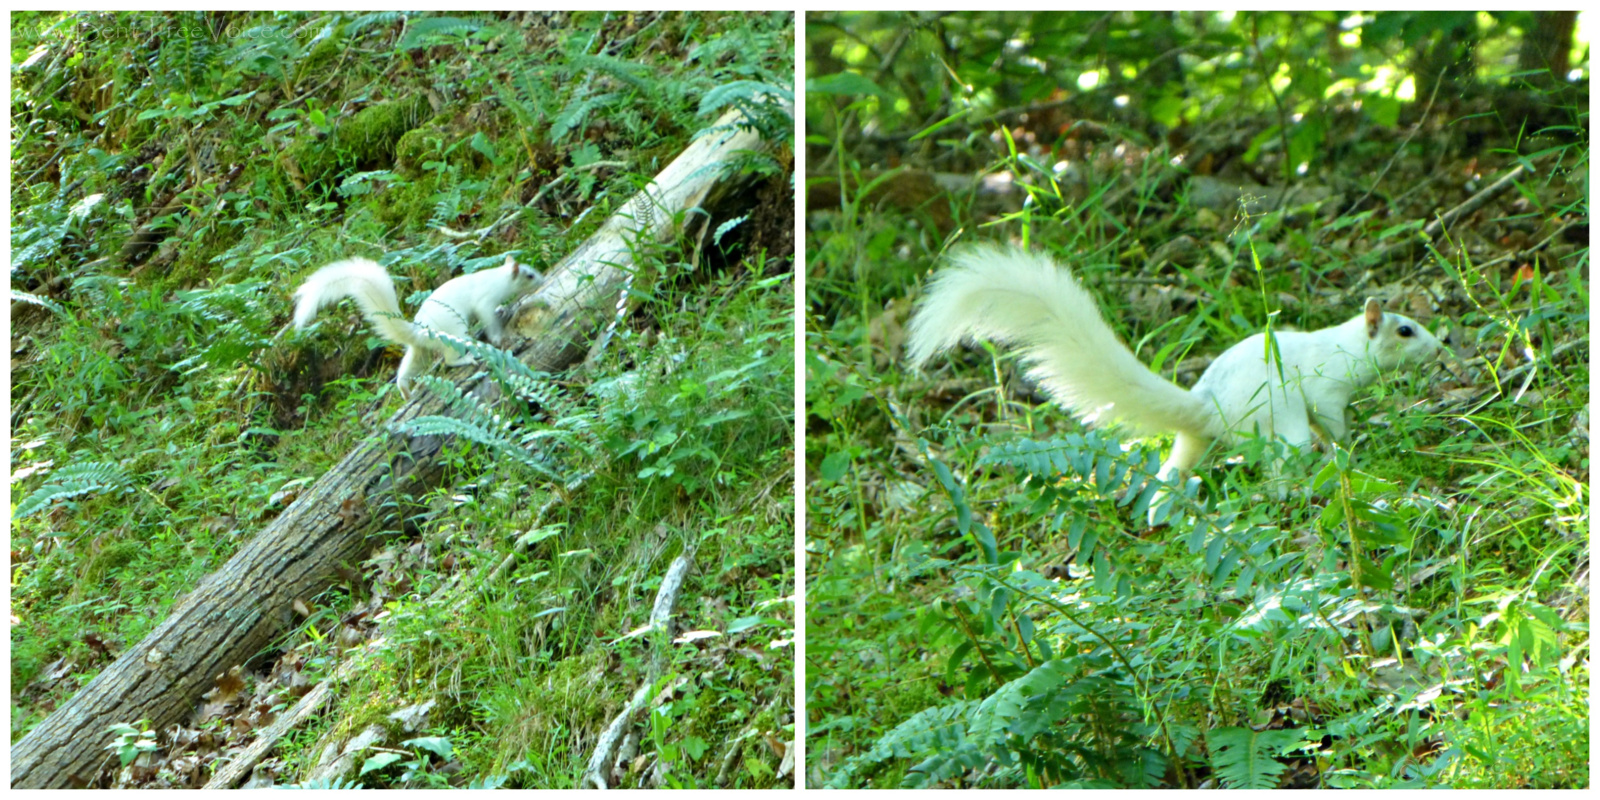 May 26, 2019 - White Squirrel in Bent Tree